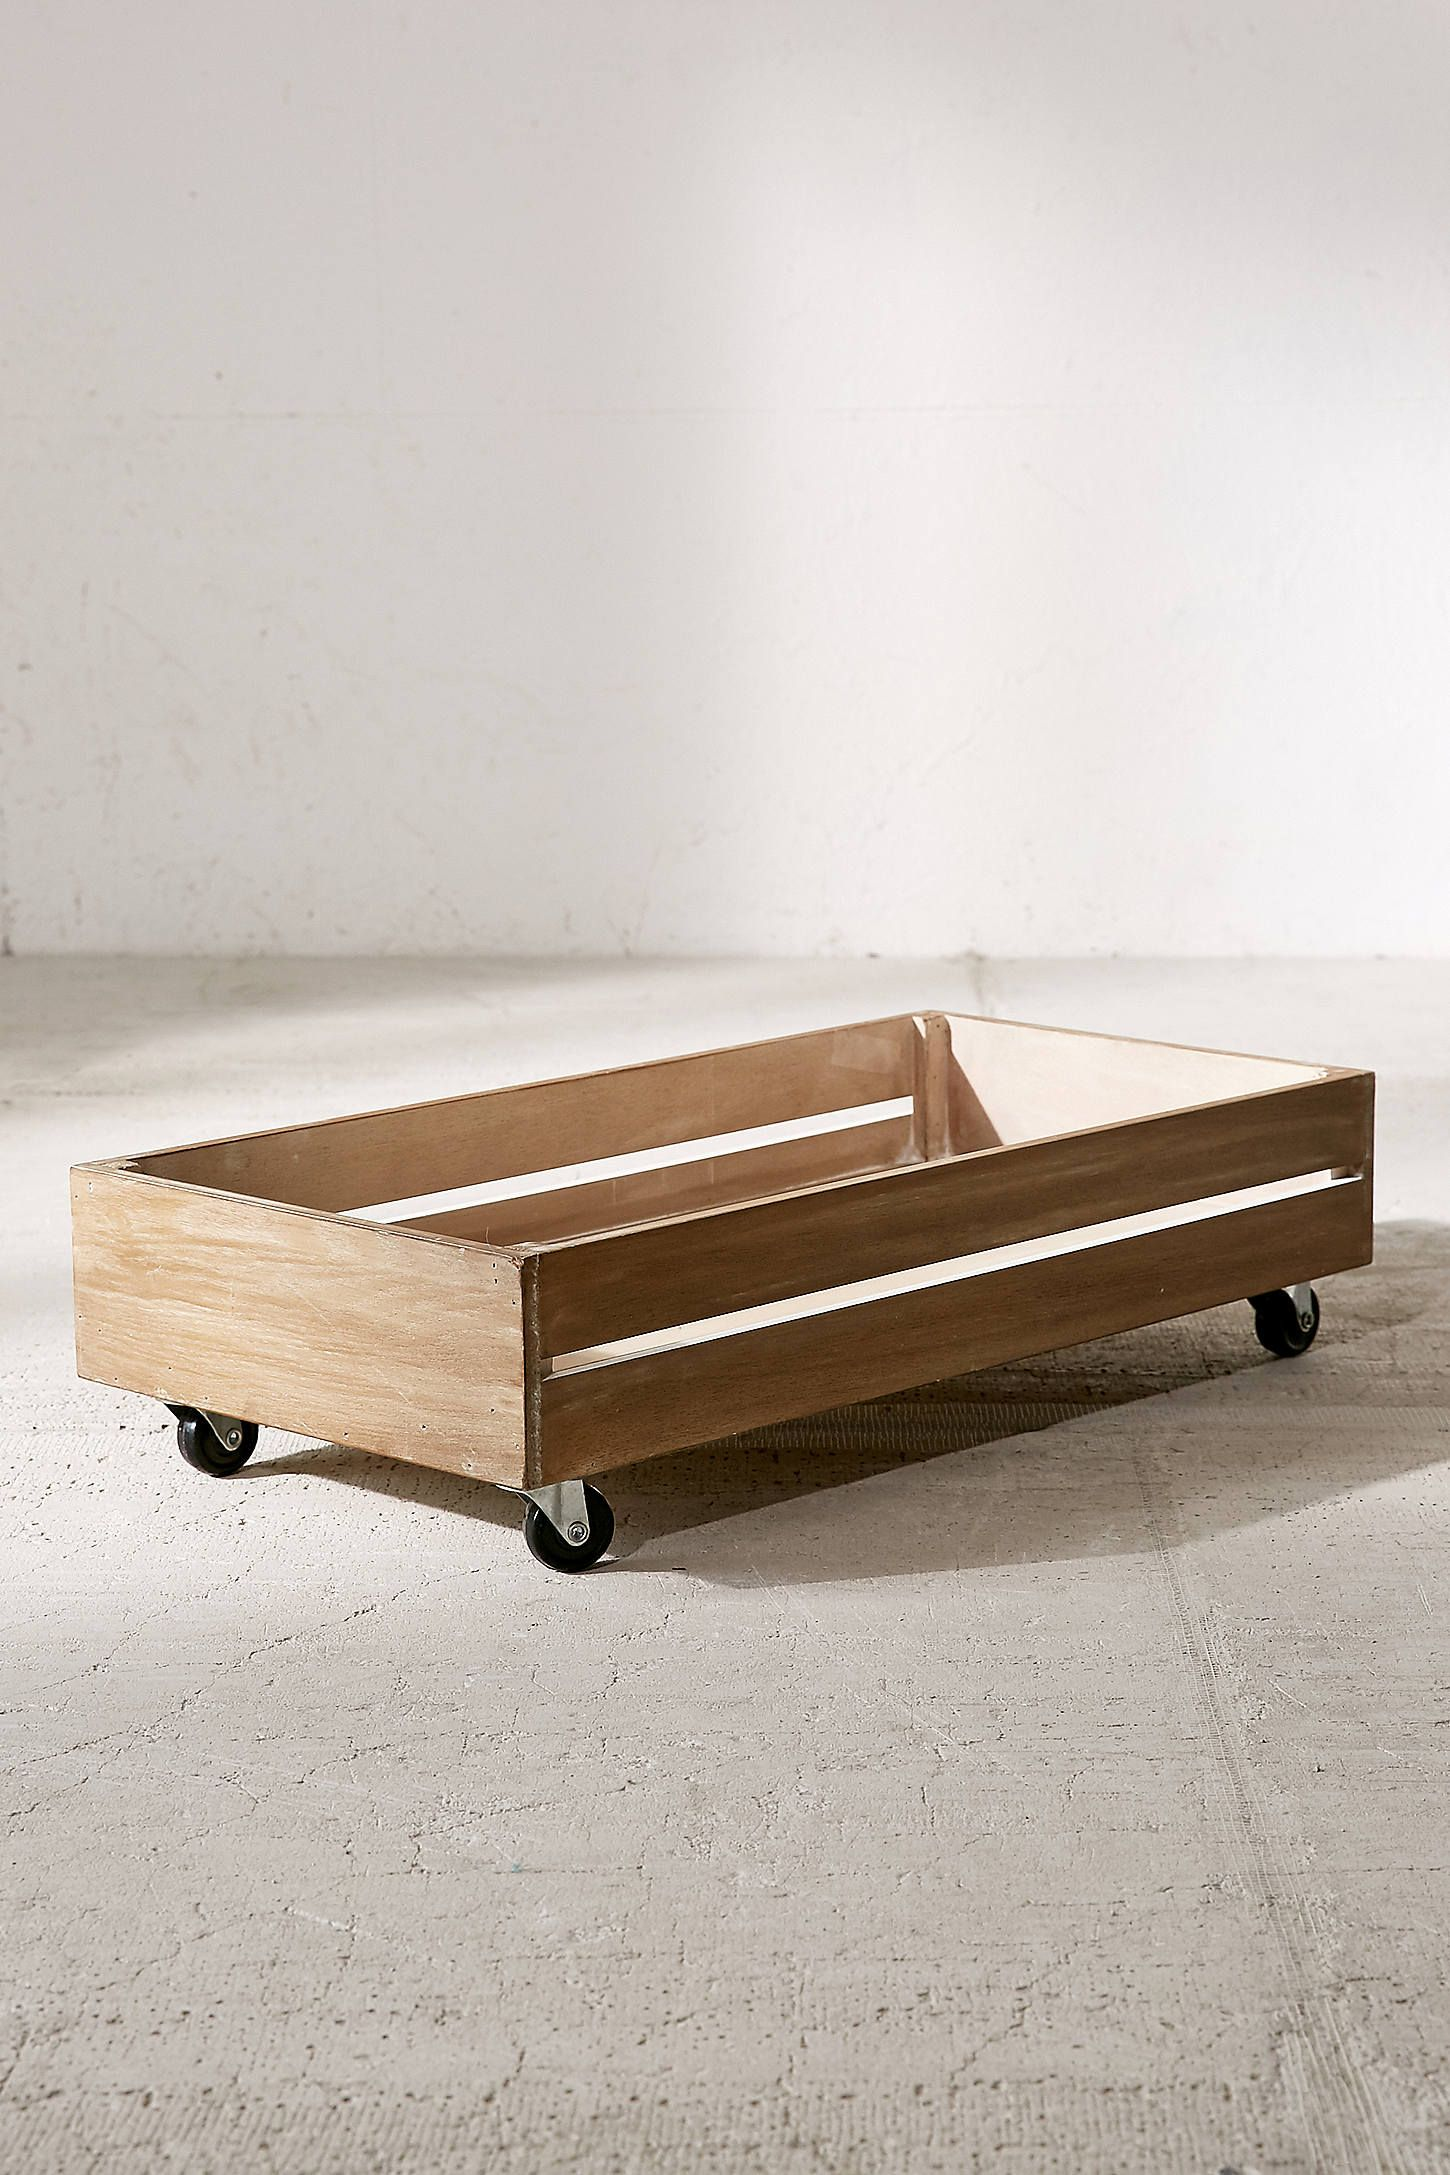 Shop Under The Bed Rolling Wood Storage Box At Urban Outfitters Today. We